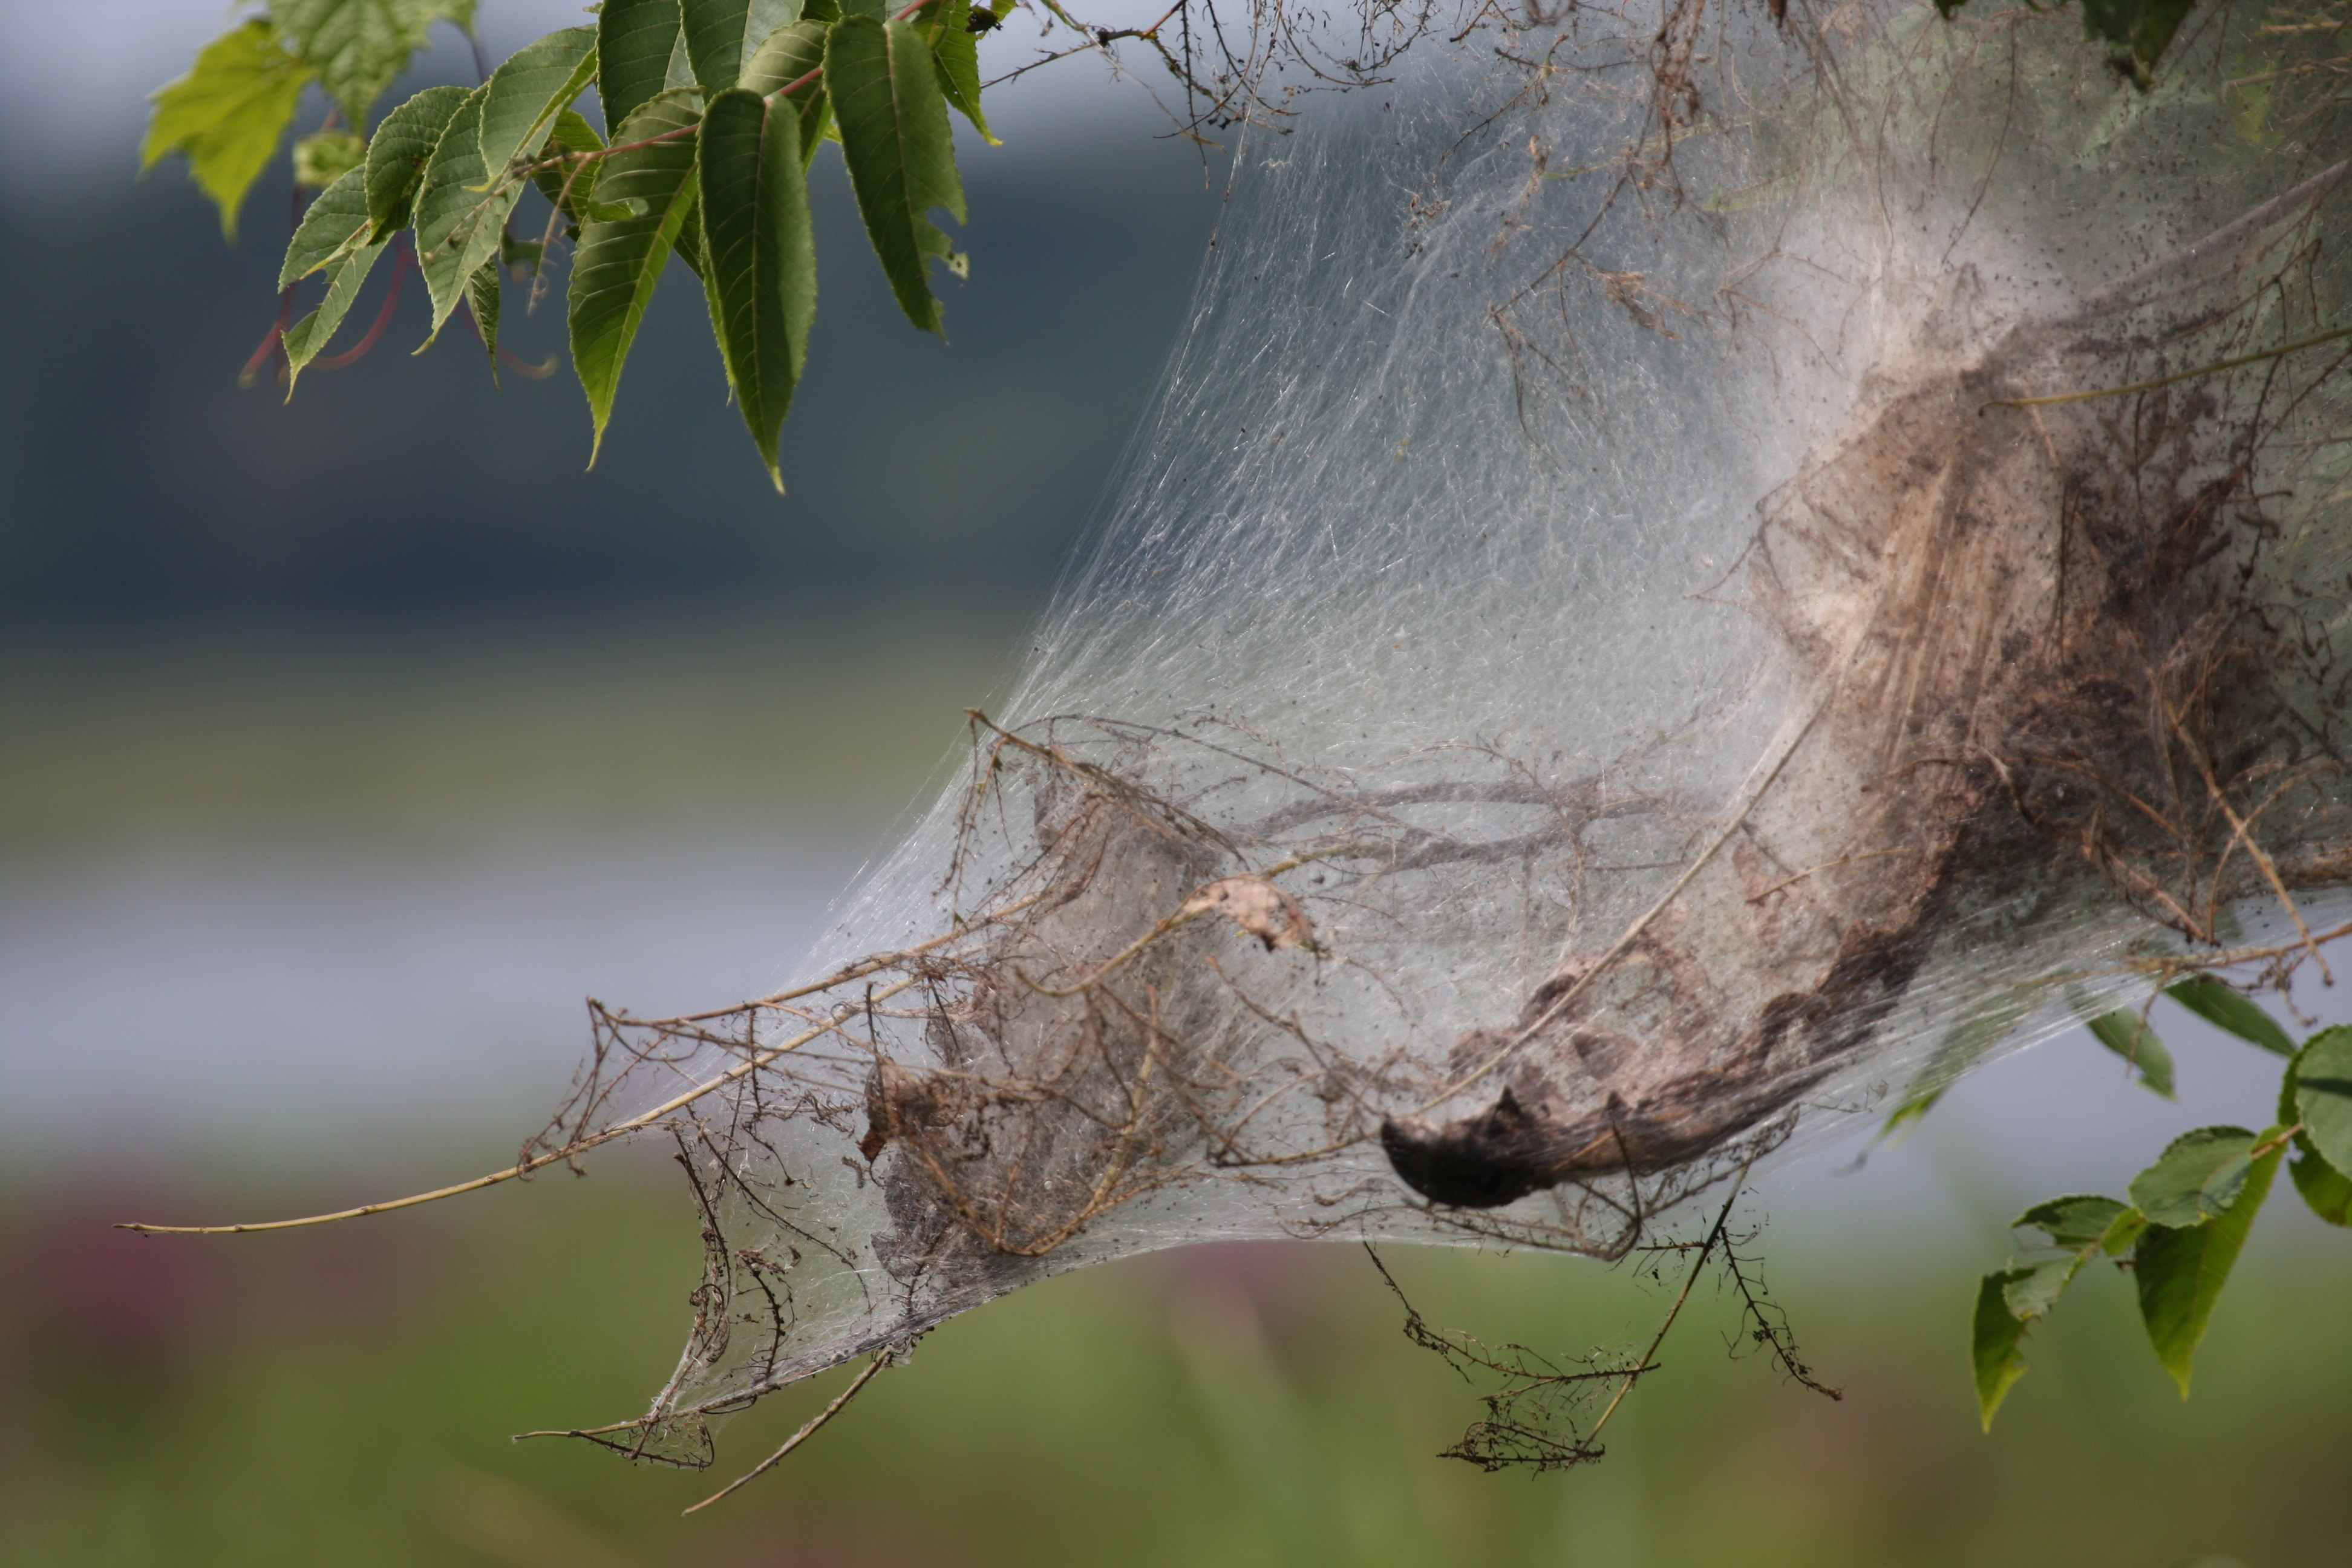 Bagworms versus webworms  What's the difference?